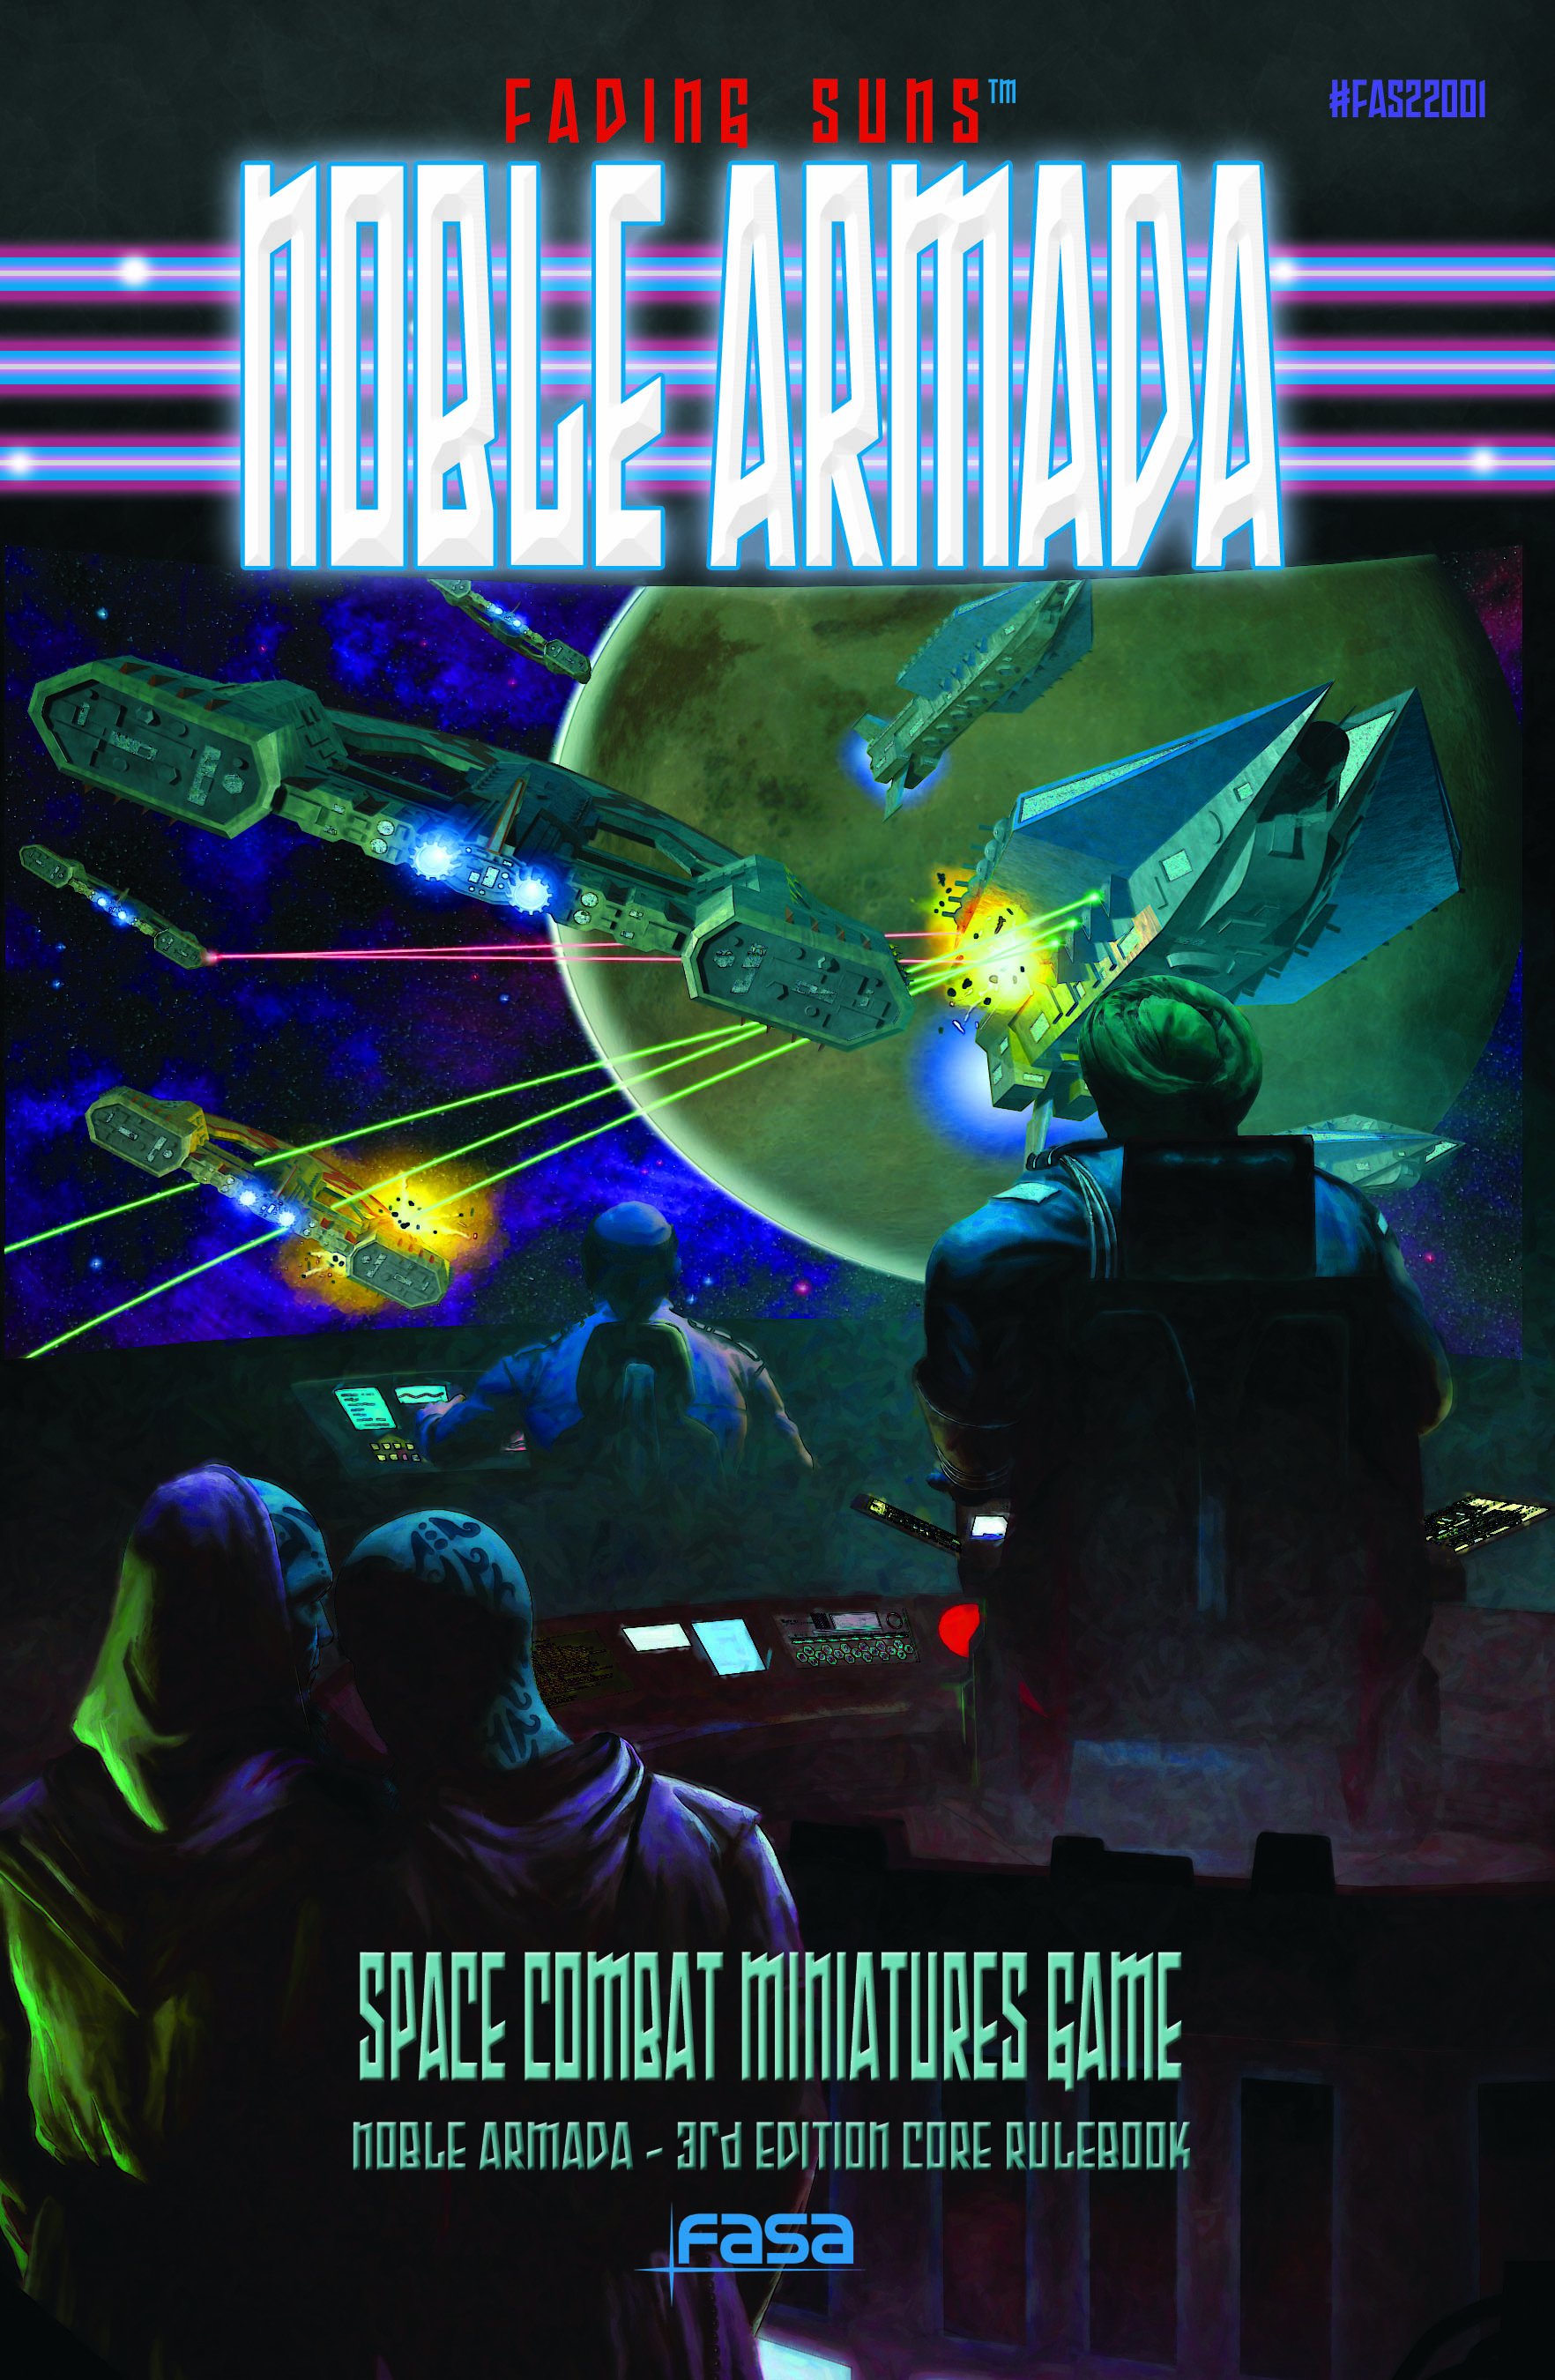 Noble Armada Pre-Order w/ Early beta PDF Access